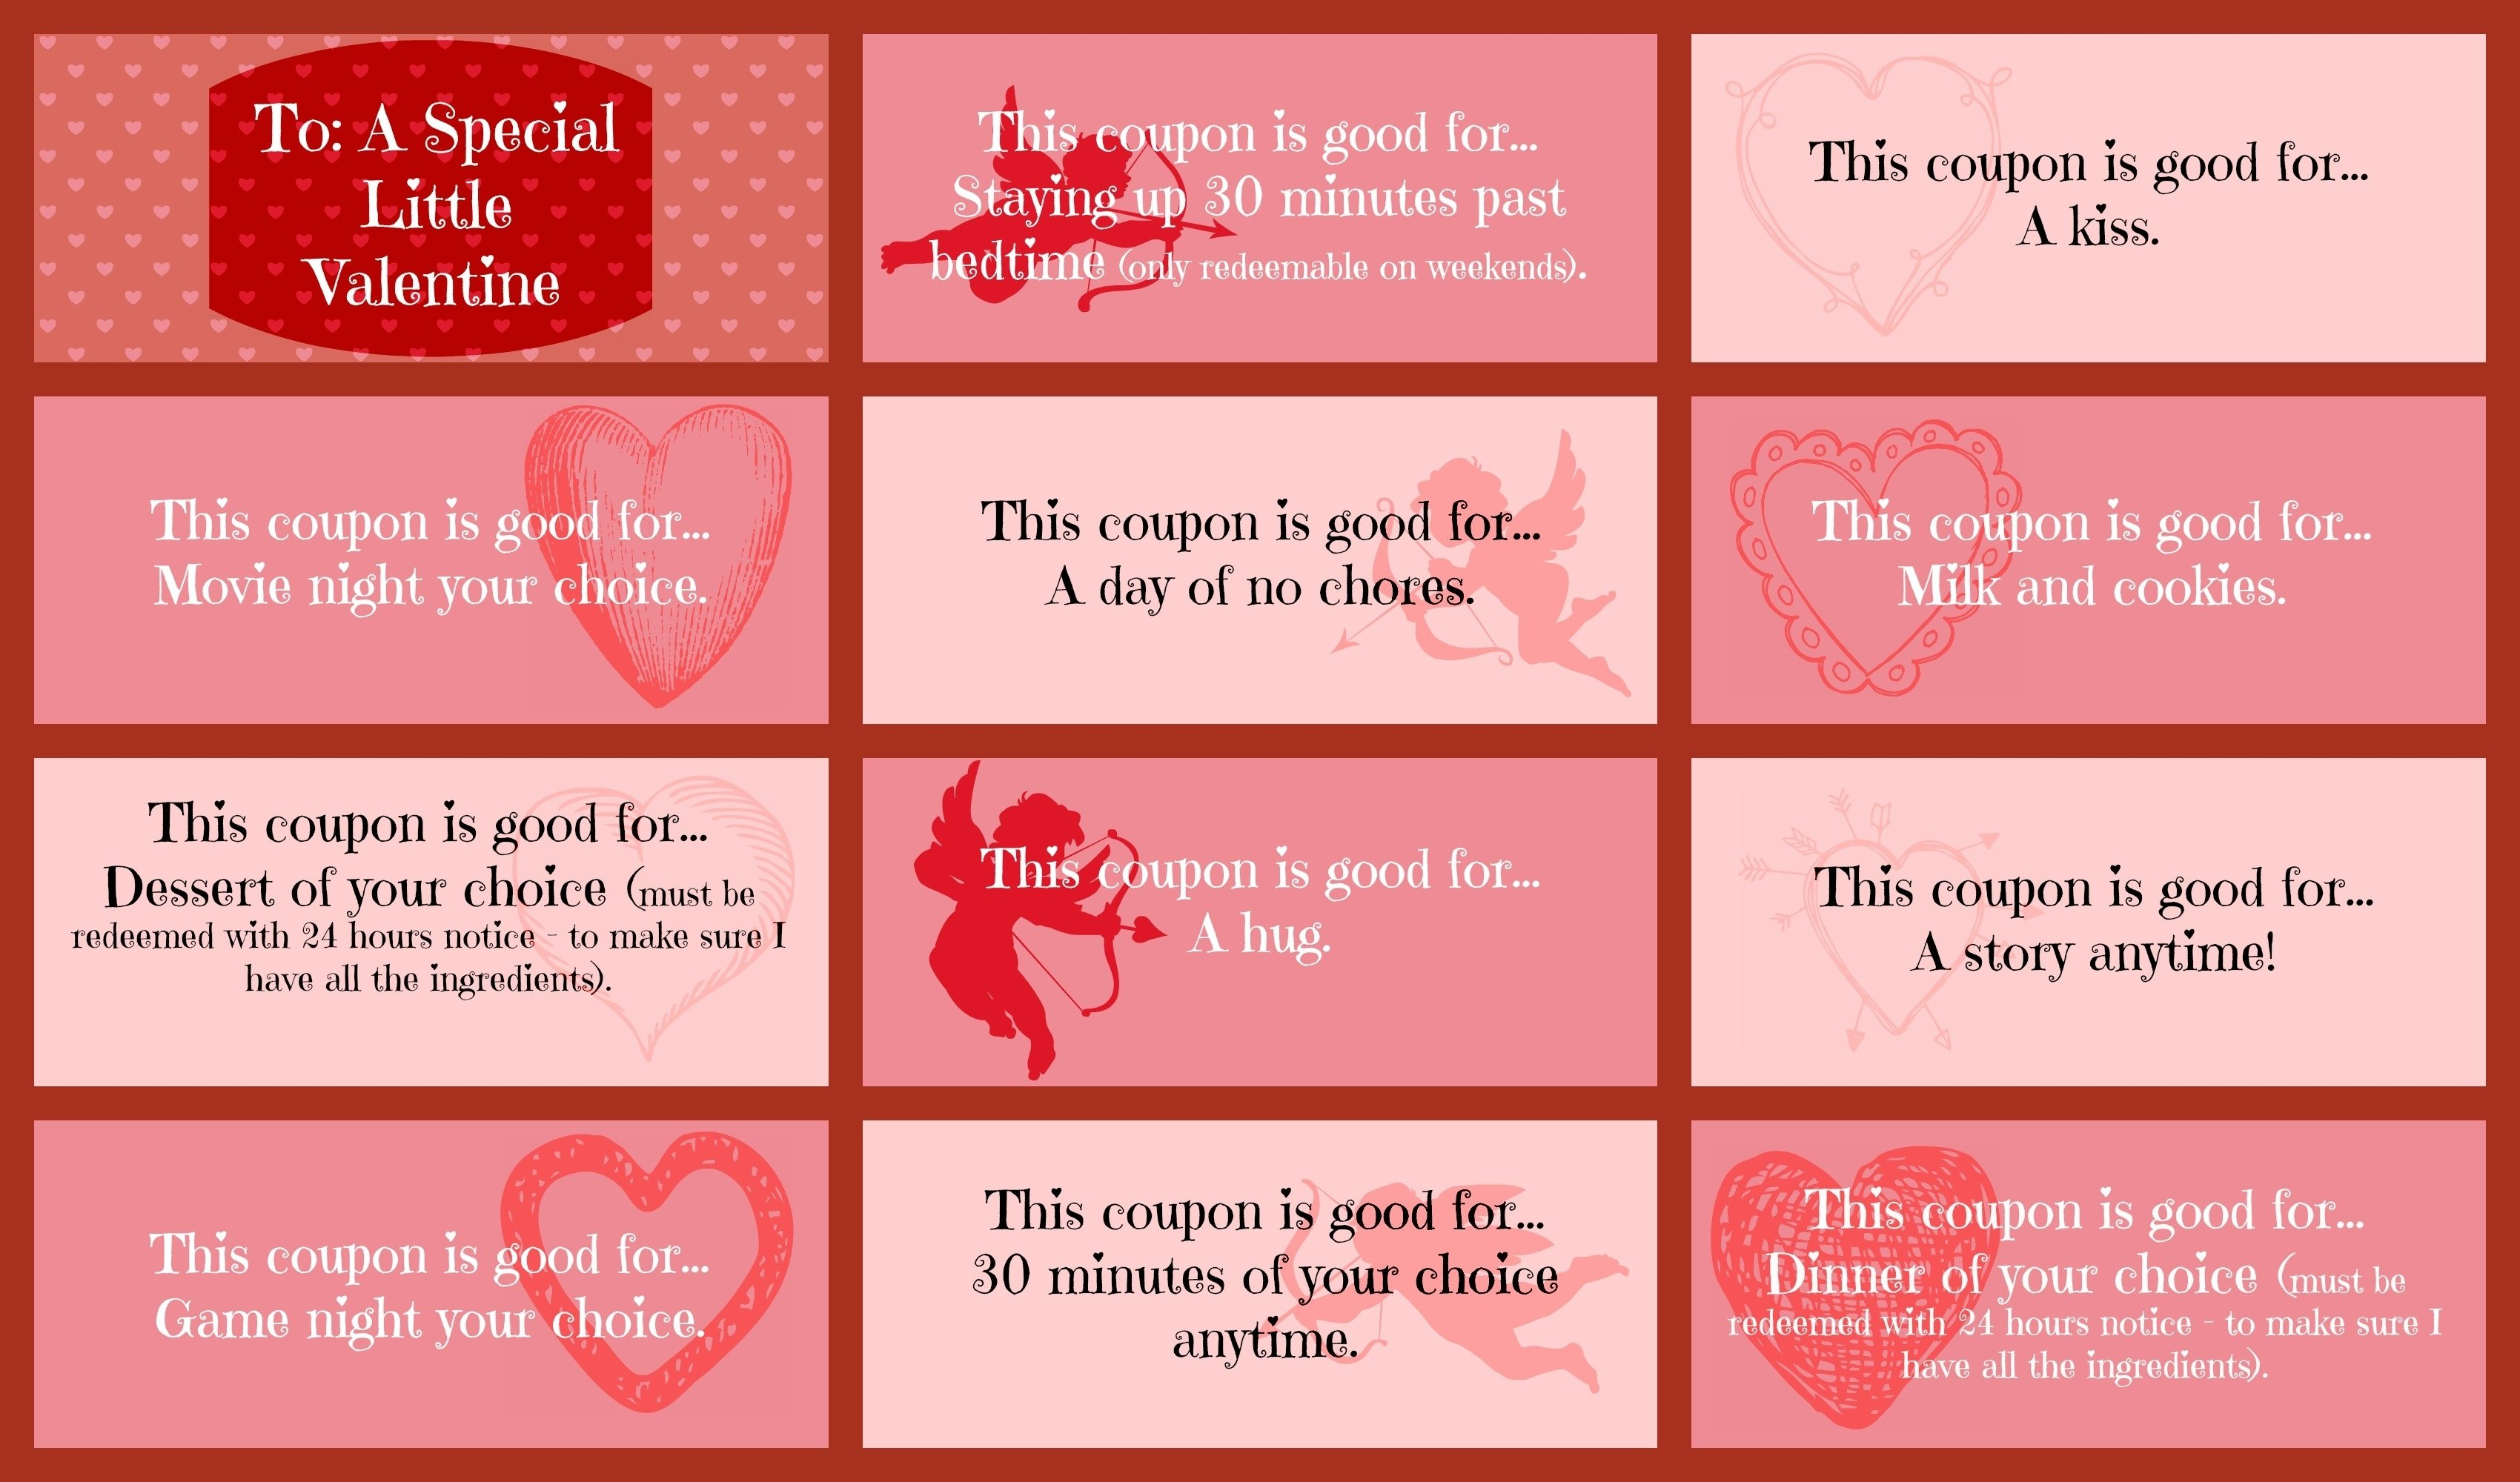 10 Attractive Valentine Coupon Book Ideas For Guys valentine day coupon book ideas startupcorner co 1